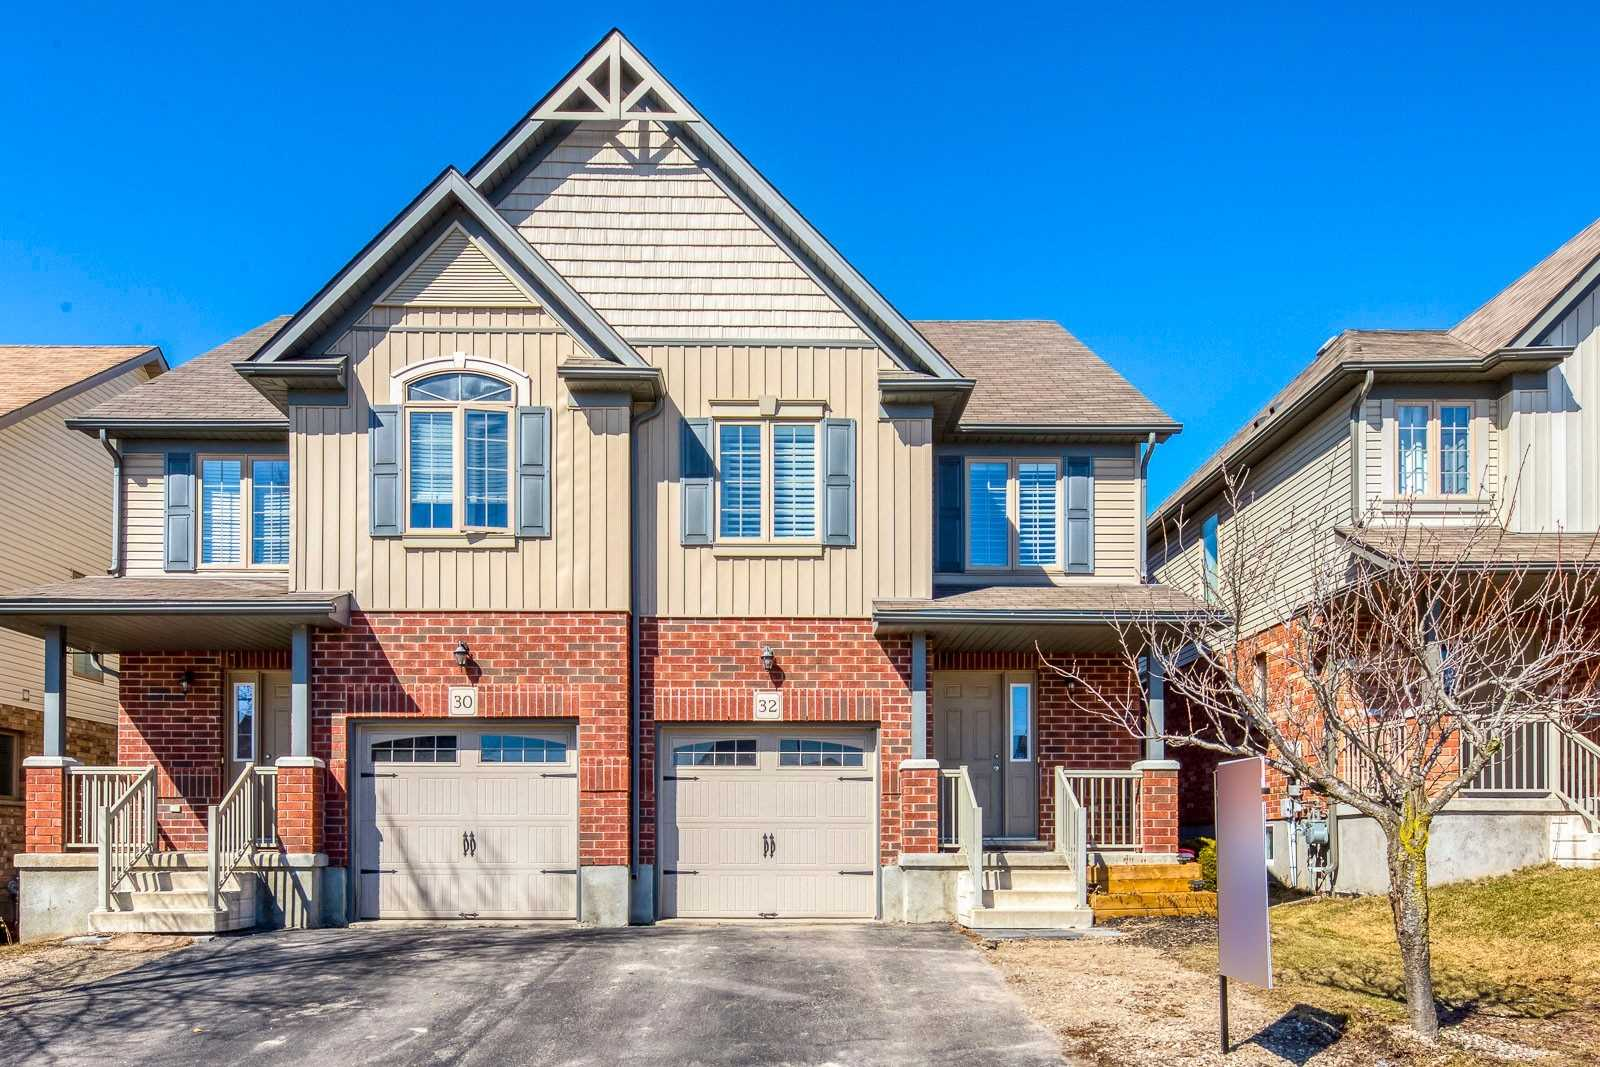 pictures of house for sale MLS: X4722348 located at 32 Acker St, Guelph N1E0G1